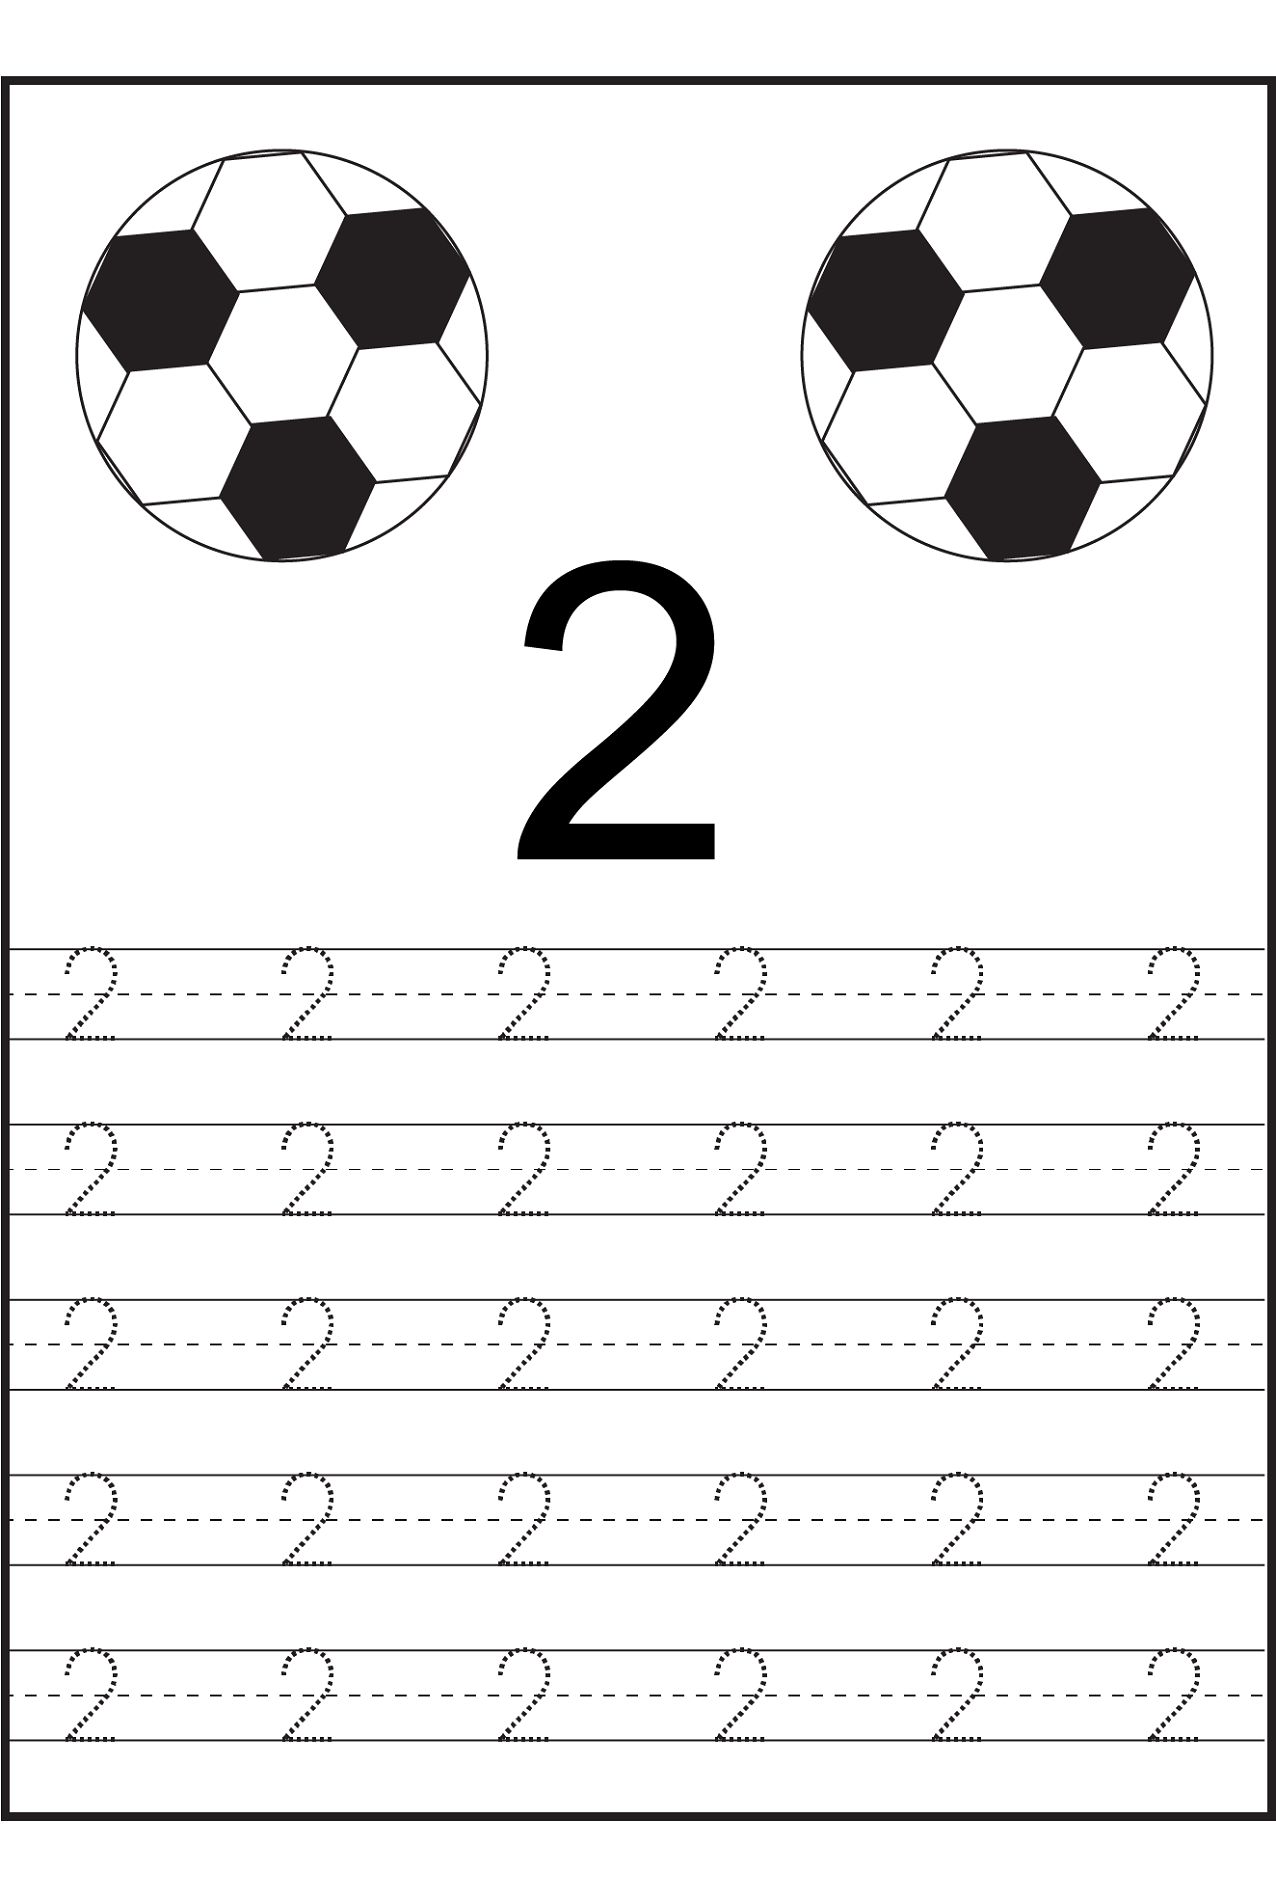 Number 2 coloring pages - Trace Number 2 Ball